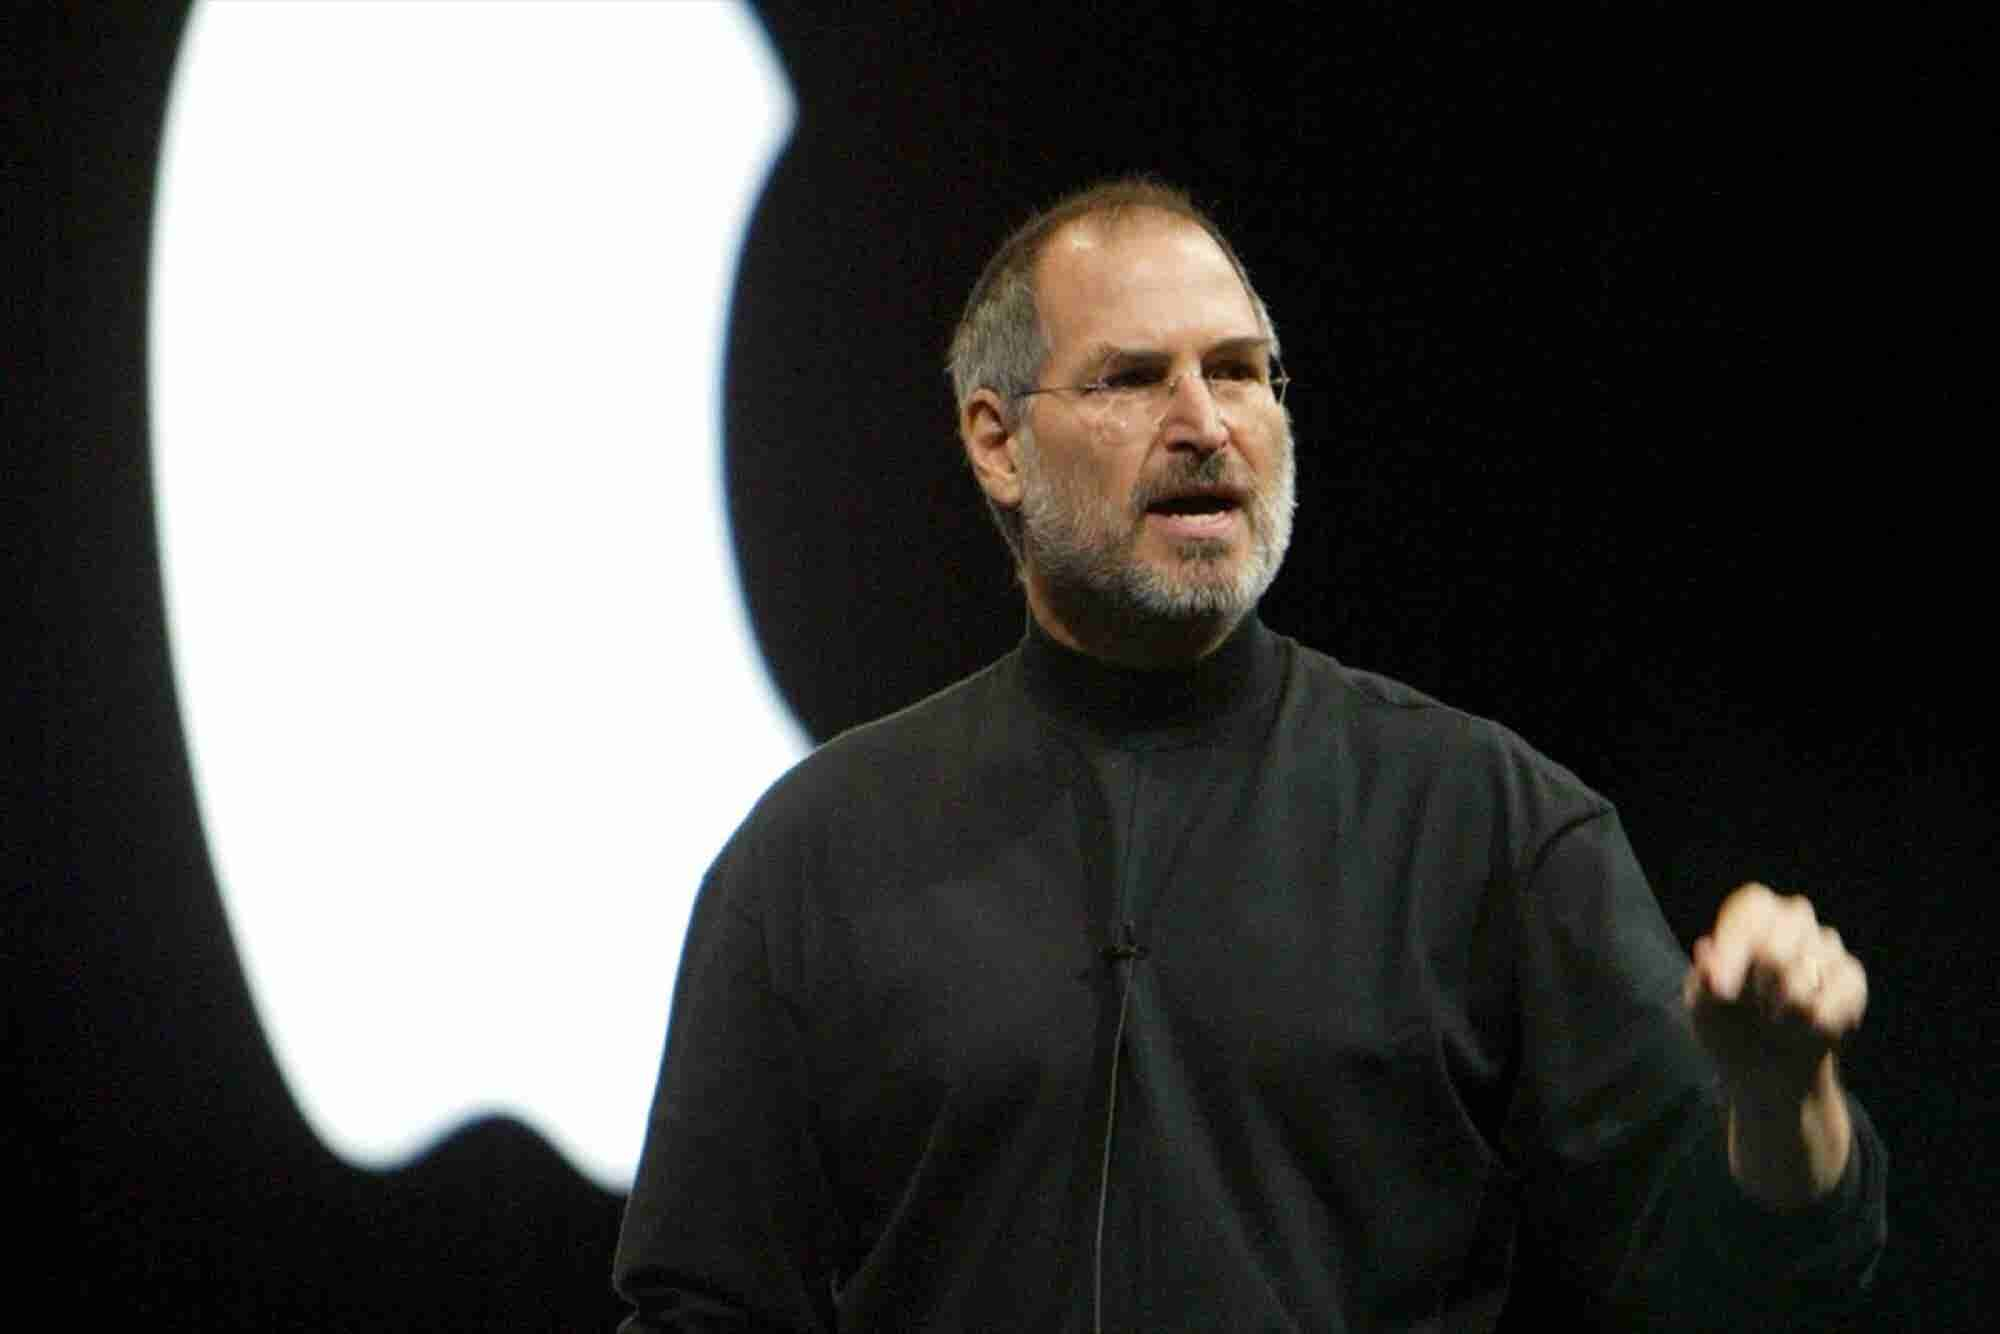 What You Can Learn From Steve Jobs About Distorting the Truth to Advan...